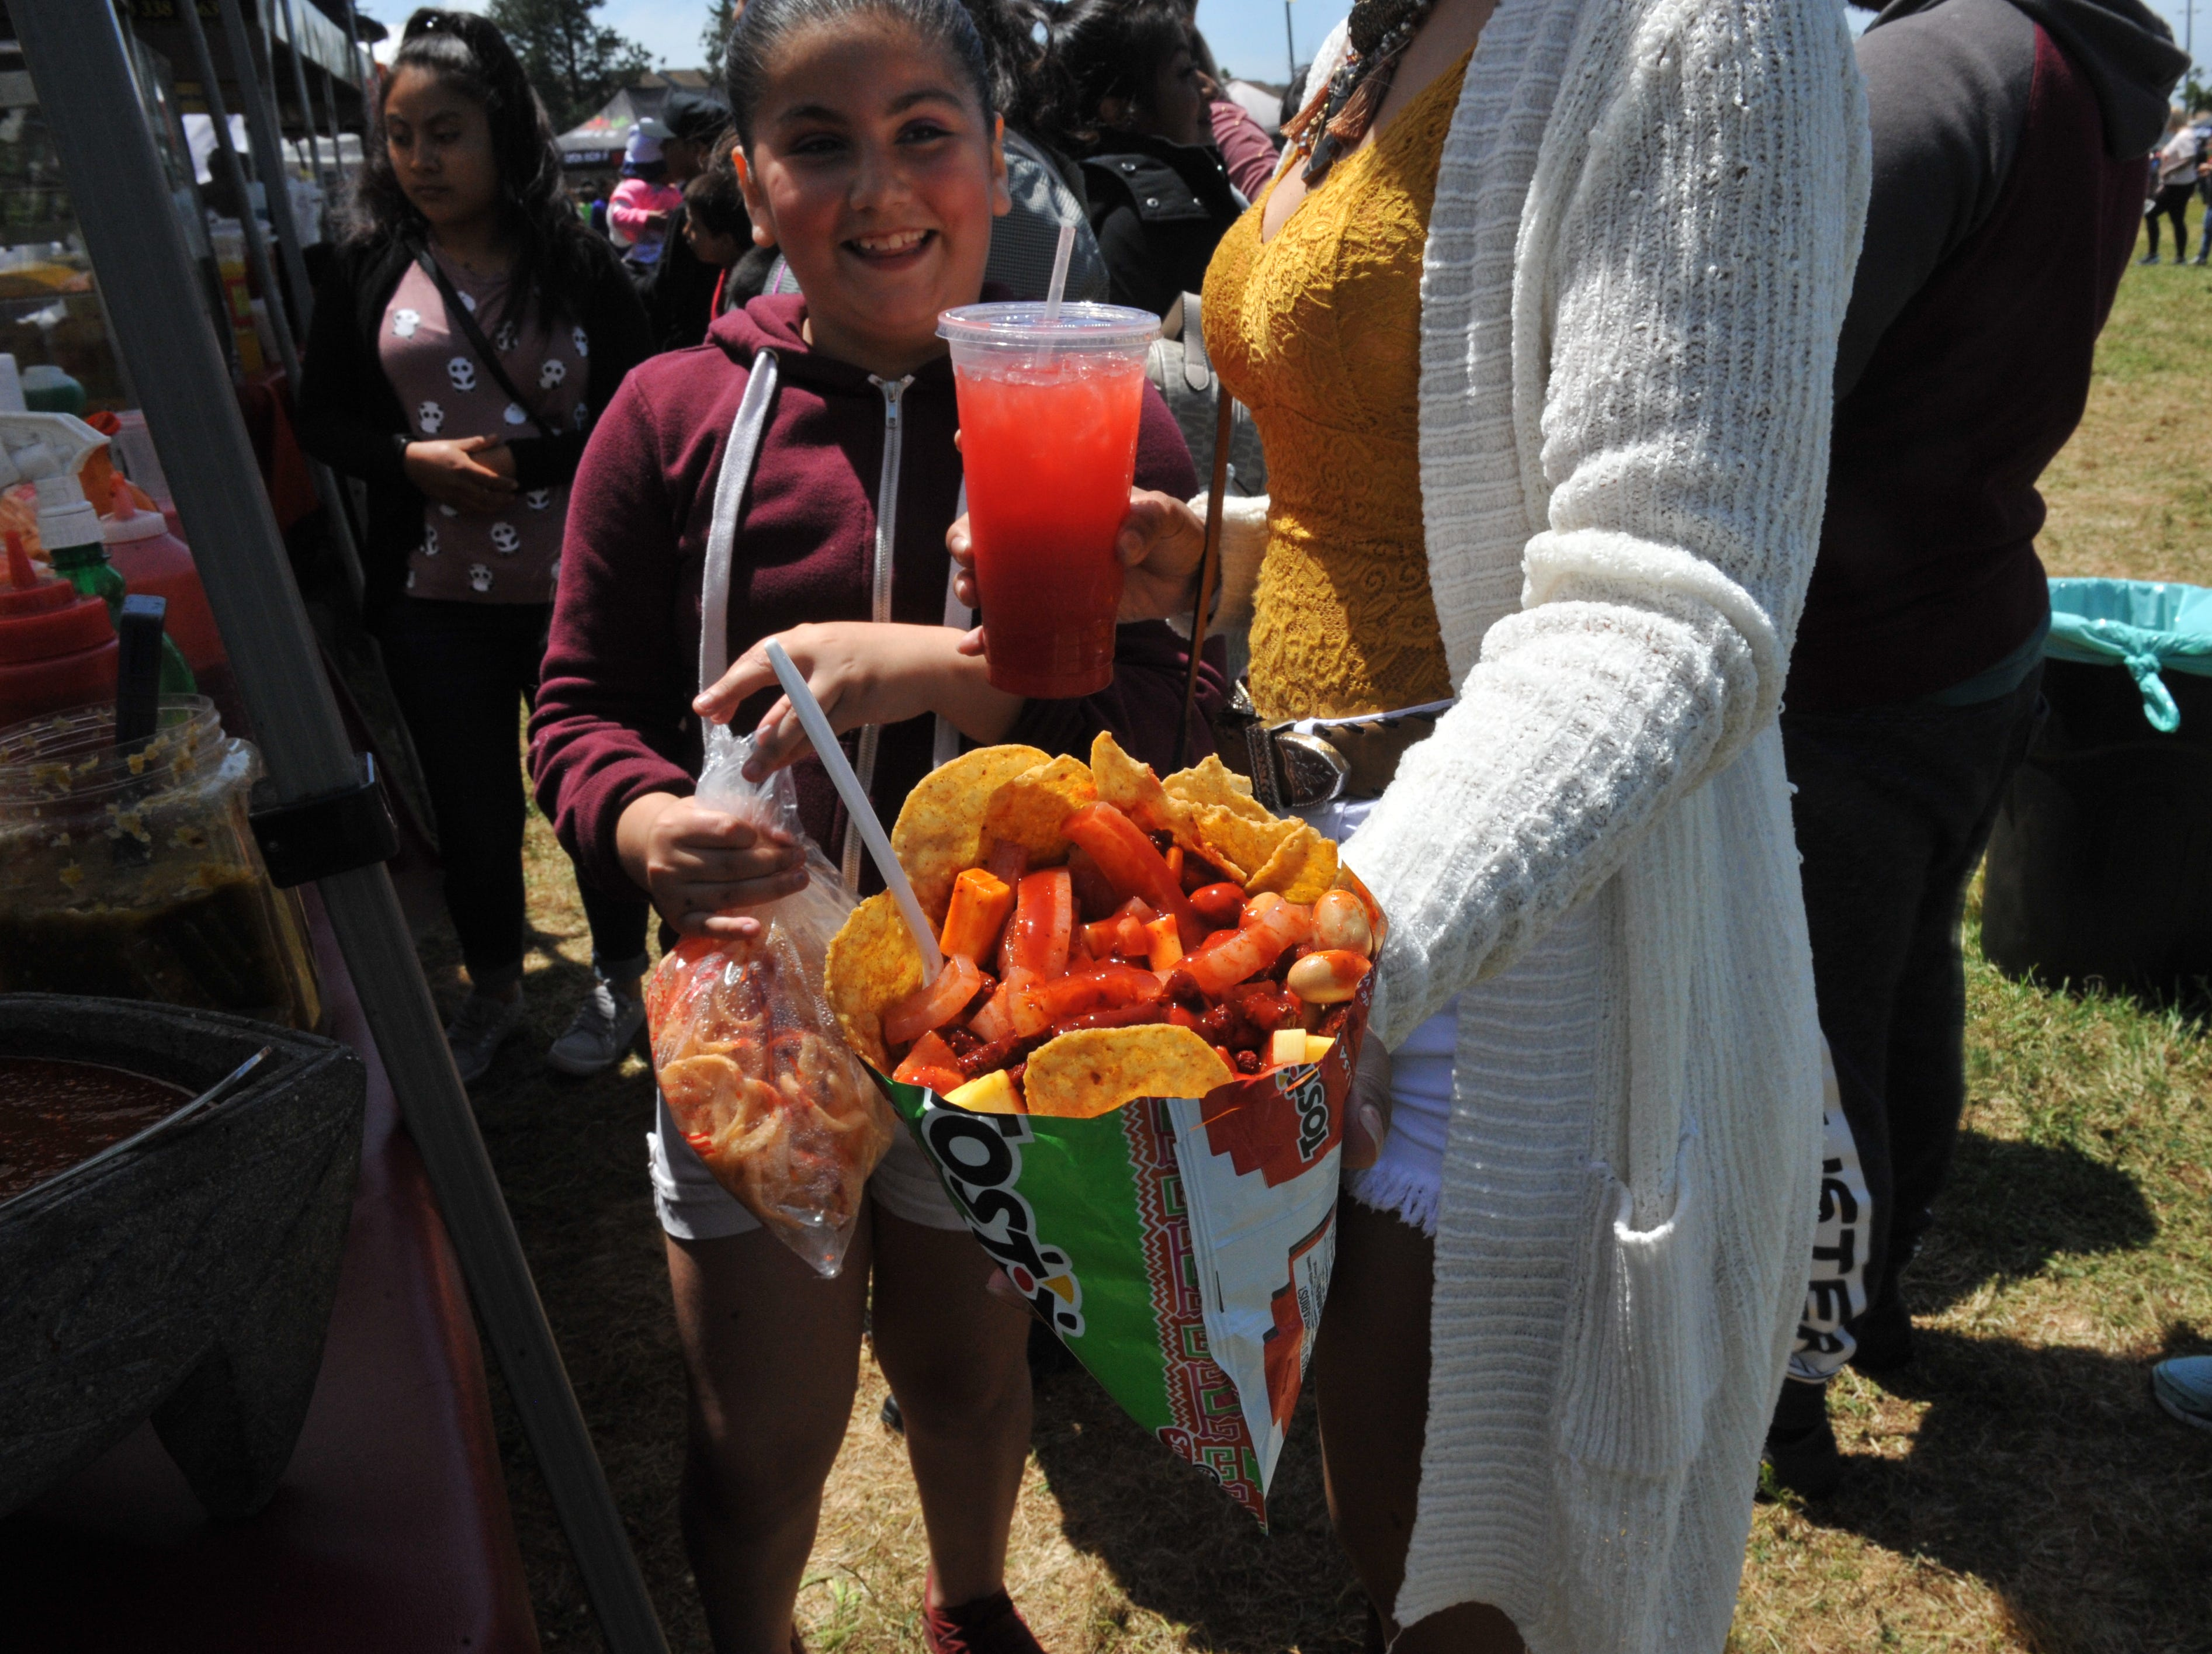 An order of Tostilocos, chips with fruits, Japanese peanuts and pickled pork skin, is served by Kings + Queen Beverages at the Salinas Día Del Niño on April 28, 2019.